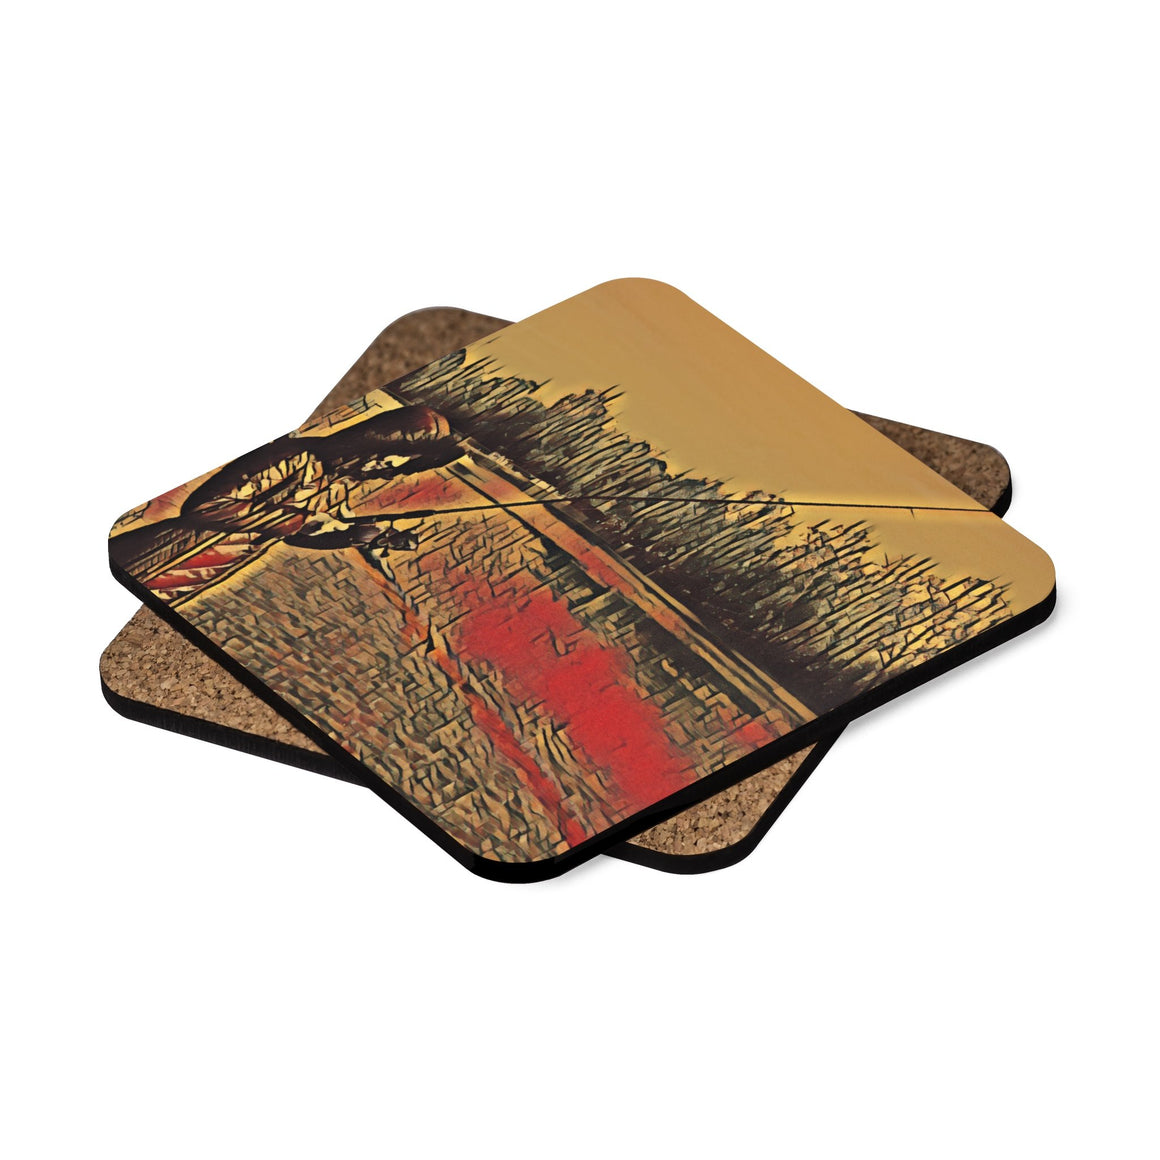 Levi Thang Fishing Design 11 Square Hardboard Coaster Set - 4pcs - I Am A Dreamer